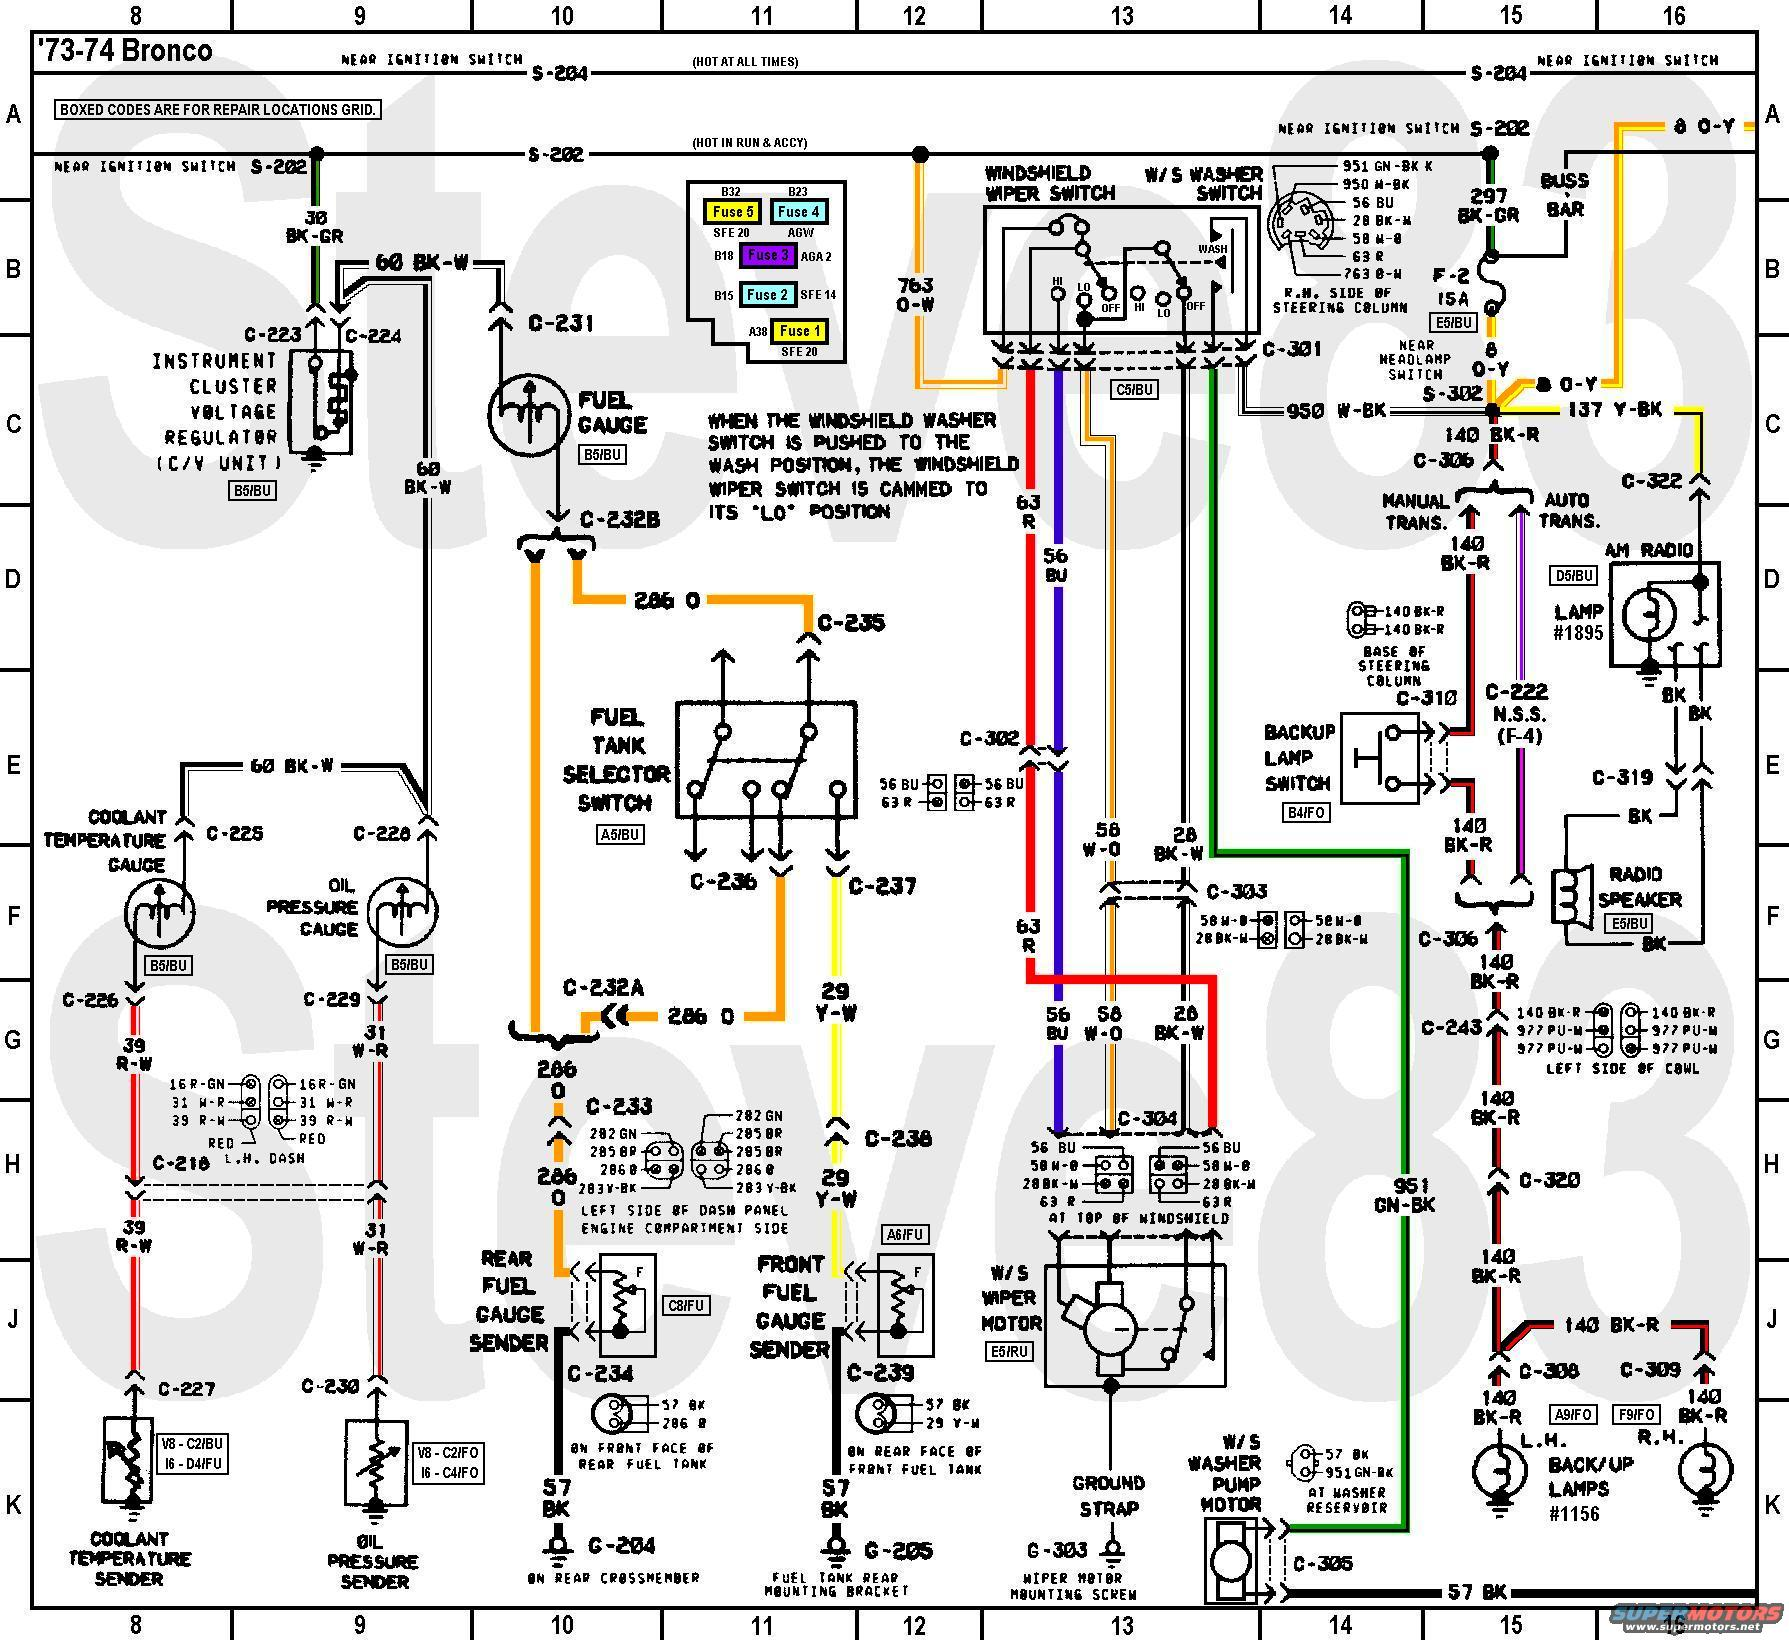 wiring7374bgawprrad early bronco wiring diagram early bronco restoration parts 1971 bronco wiring diagram at n-0.co